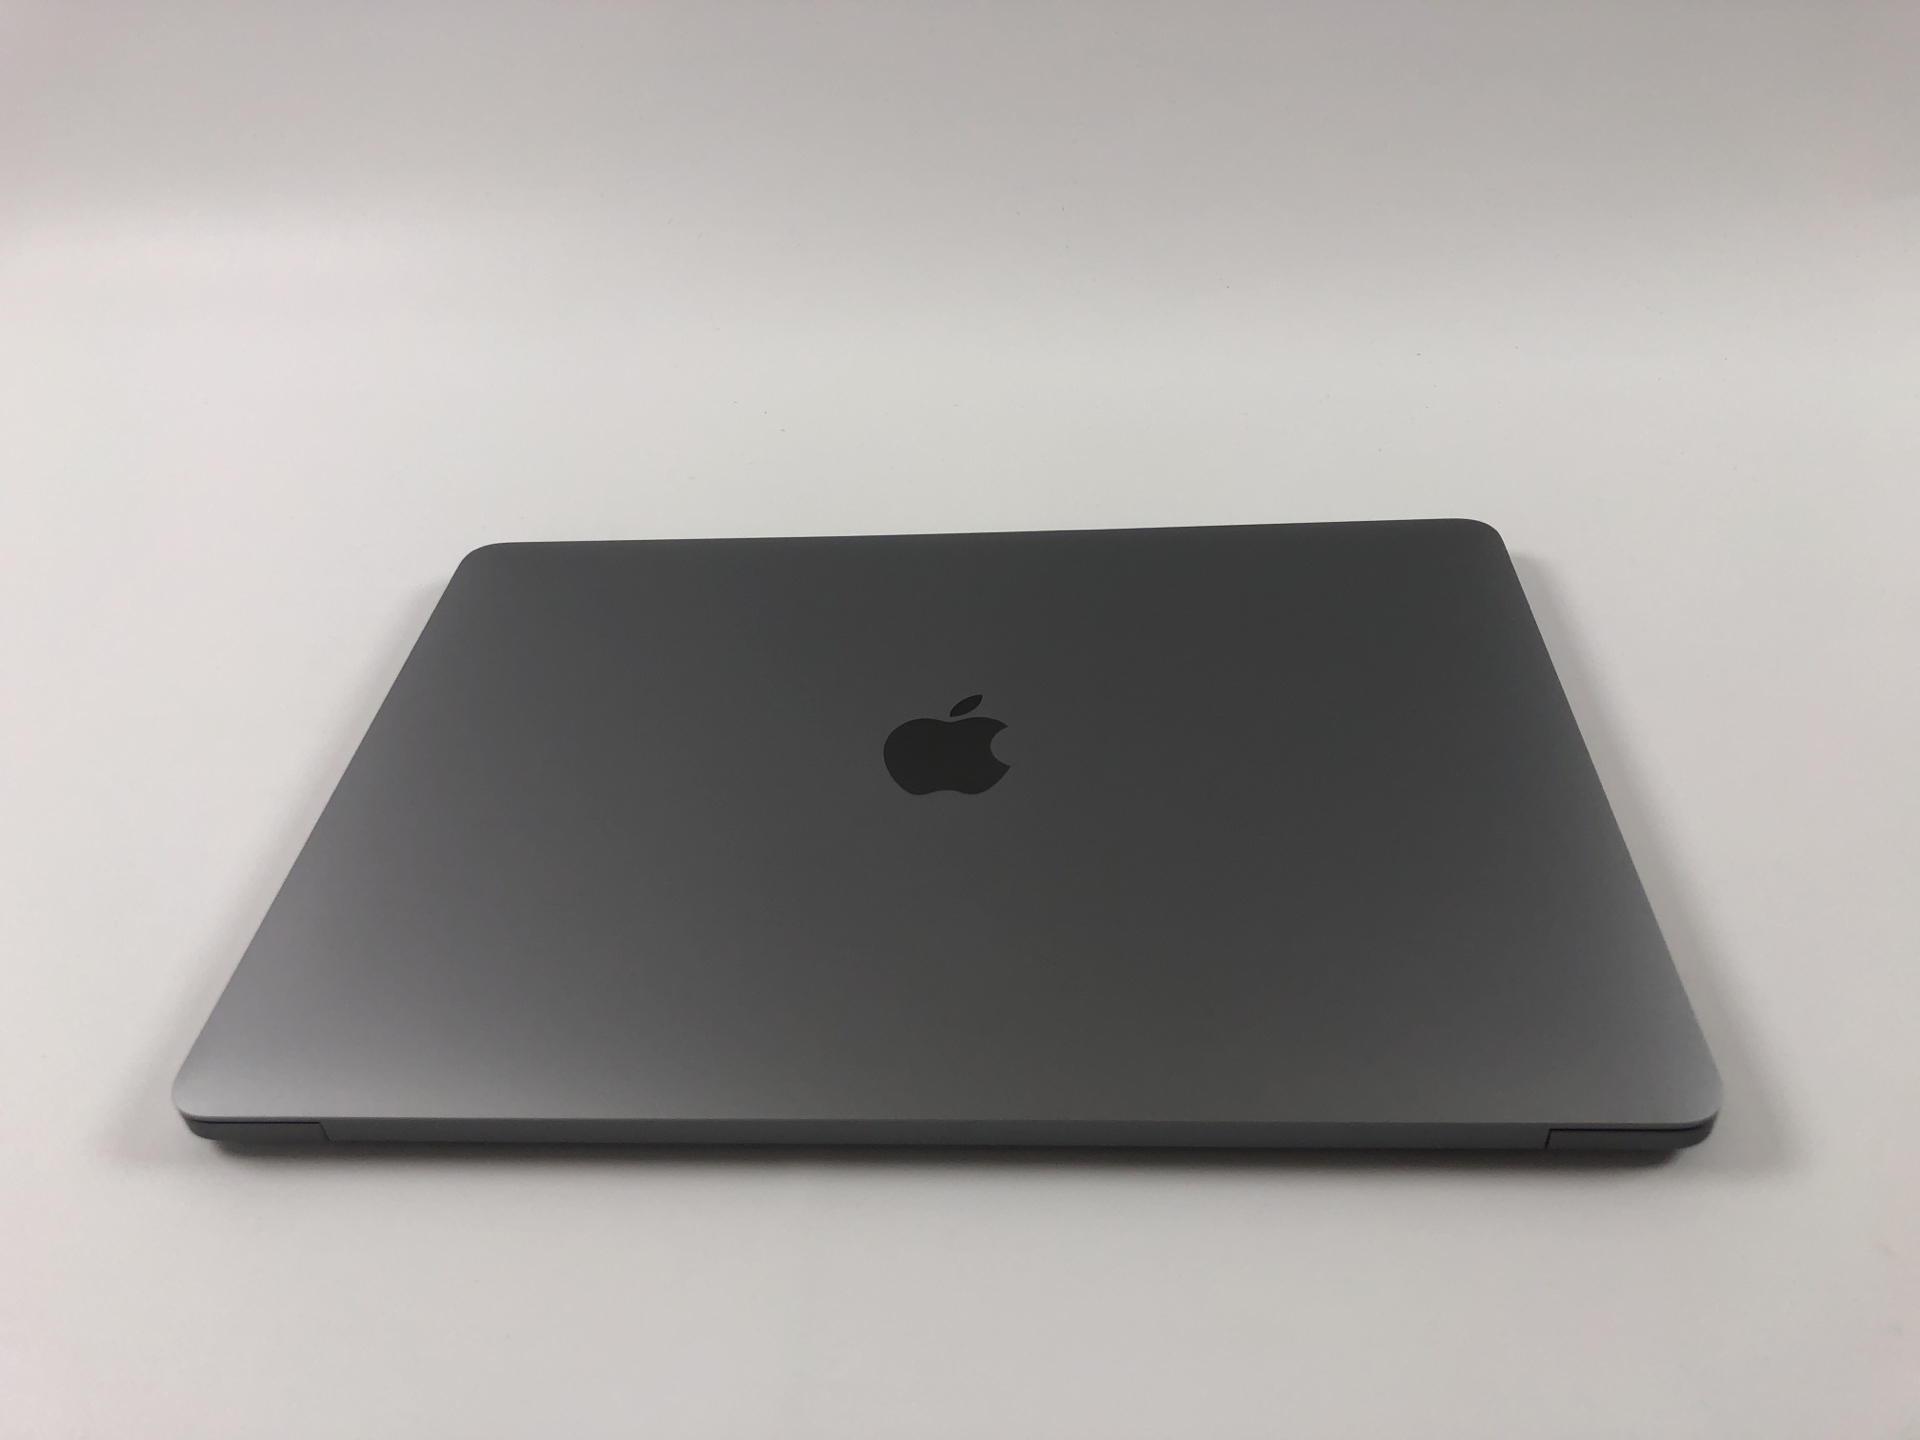 "MacBook Pro 13"" 2TBT Mid 2019 (Intel Quad-Core i5 1.4 GHz 16 GB RAM 128 GB SSD), Space Gray, Intel Quad-Core i5 1.4 GHz, 16 GB RAM, 128 GB SSD, bild 2"